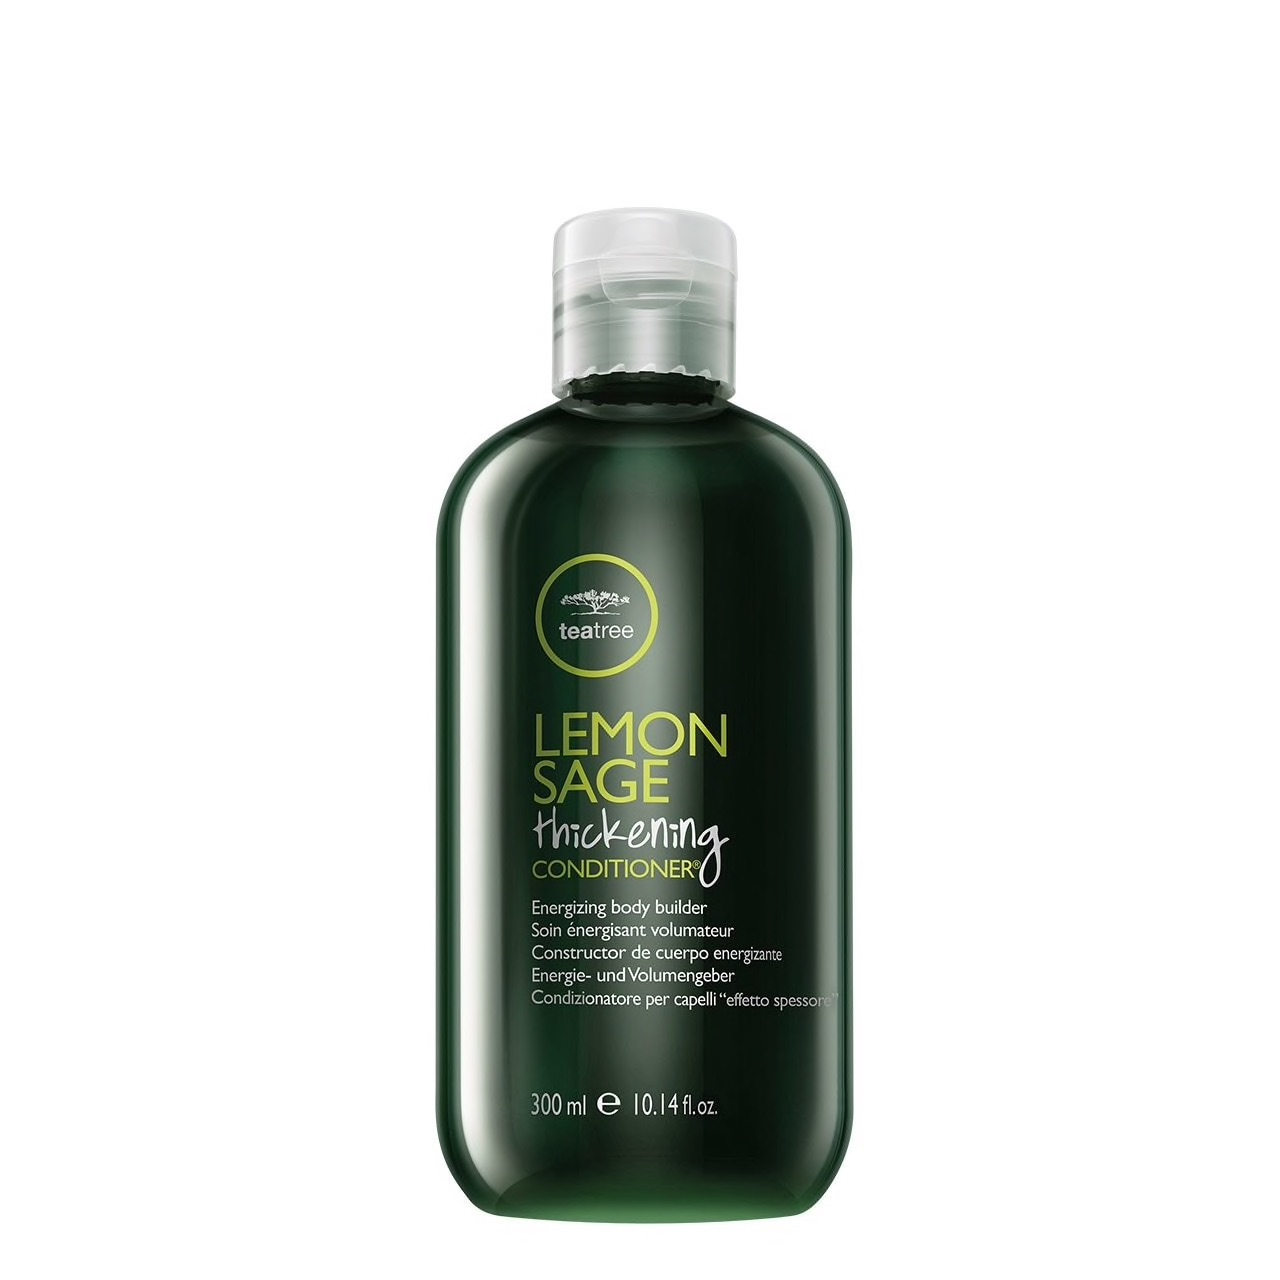 Lemon Sage Conditioner by Paul Mitchell